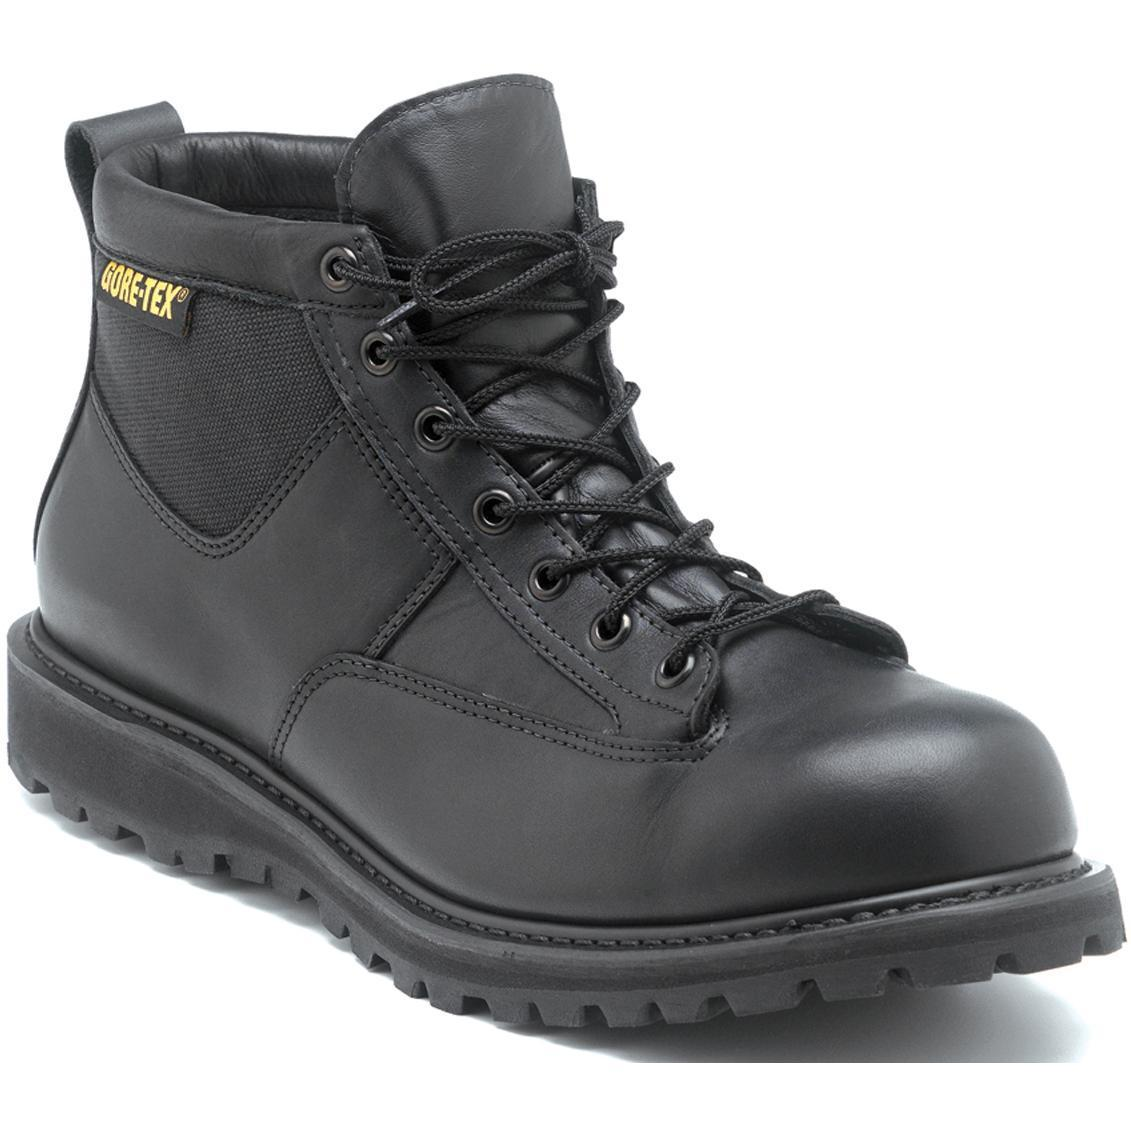 HUGE PRICE DROP: Rocky Black Leather Goretex Northern Ops Chukka Boots - Ships Same/Next Day!